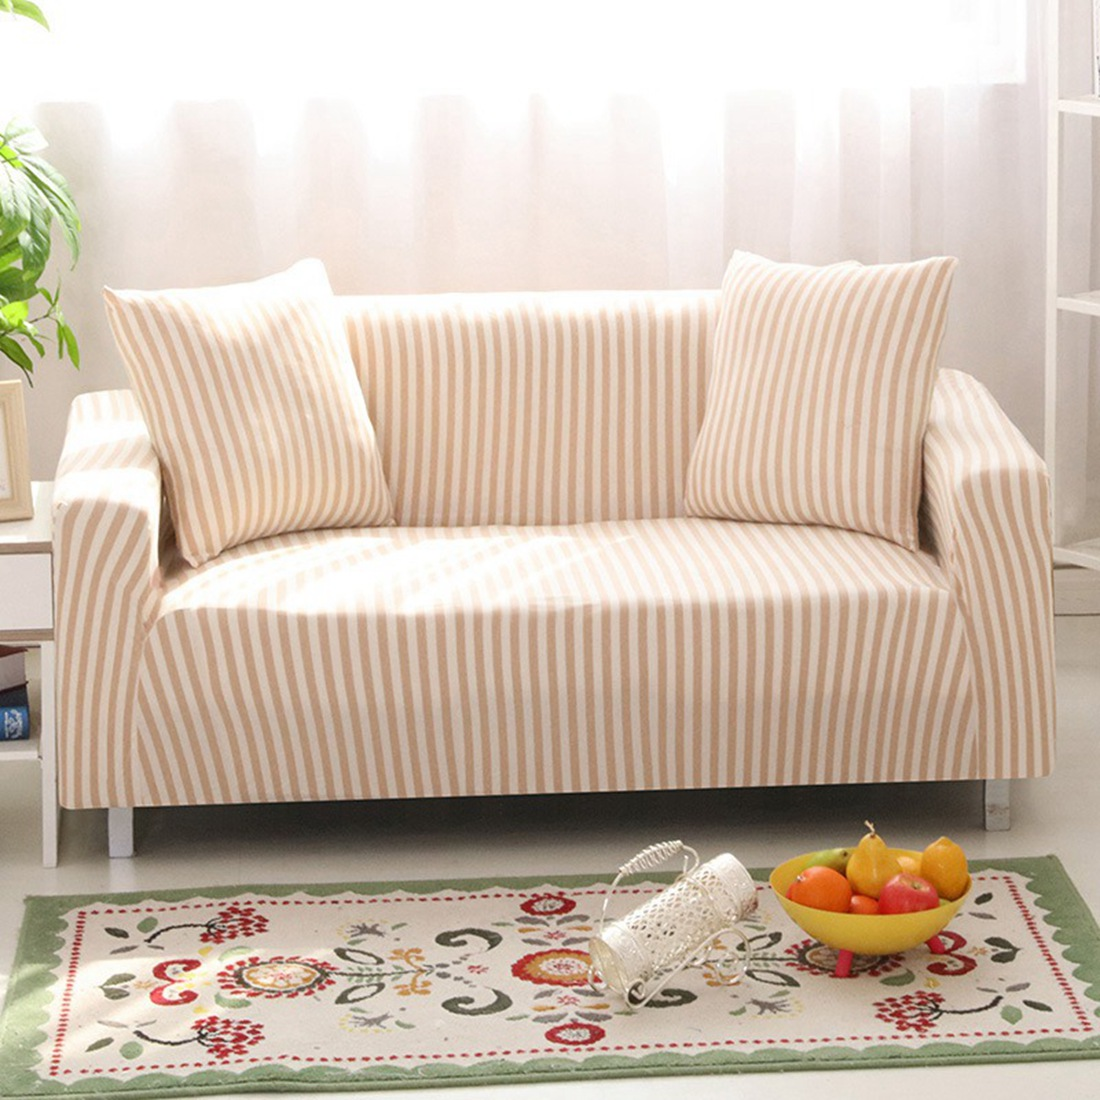 Latest Design Sofa Covers Elegant Sectional Bed New Slipcover Seat Couch Cover Elastic